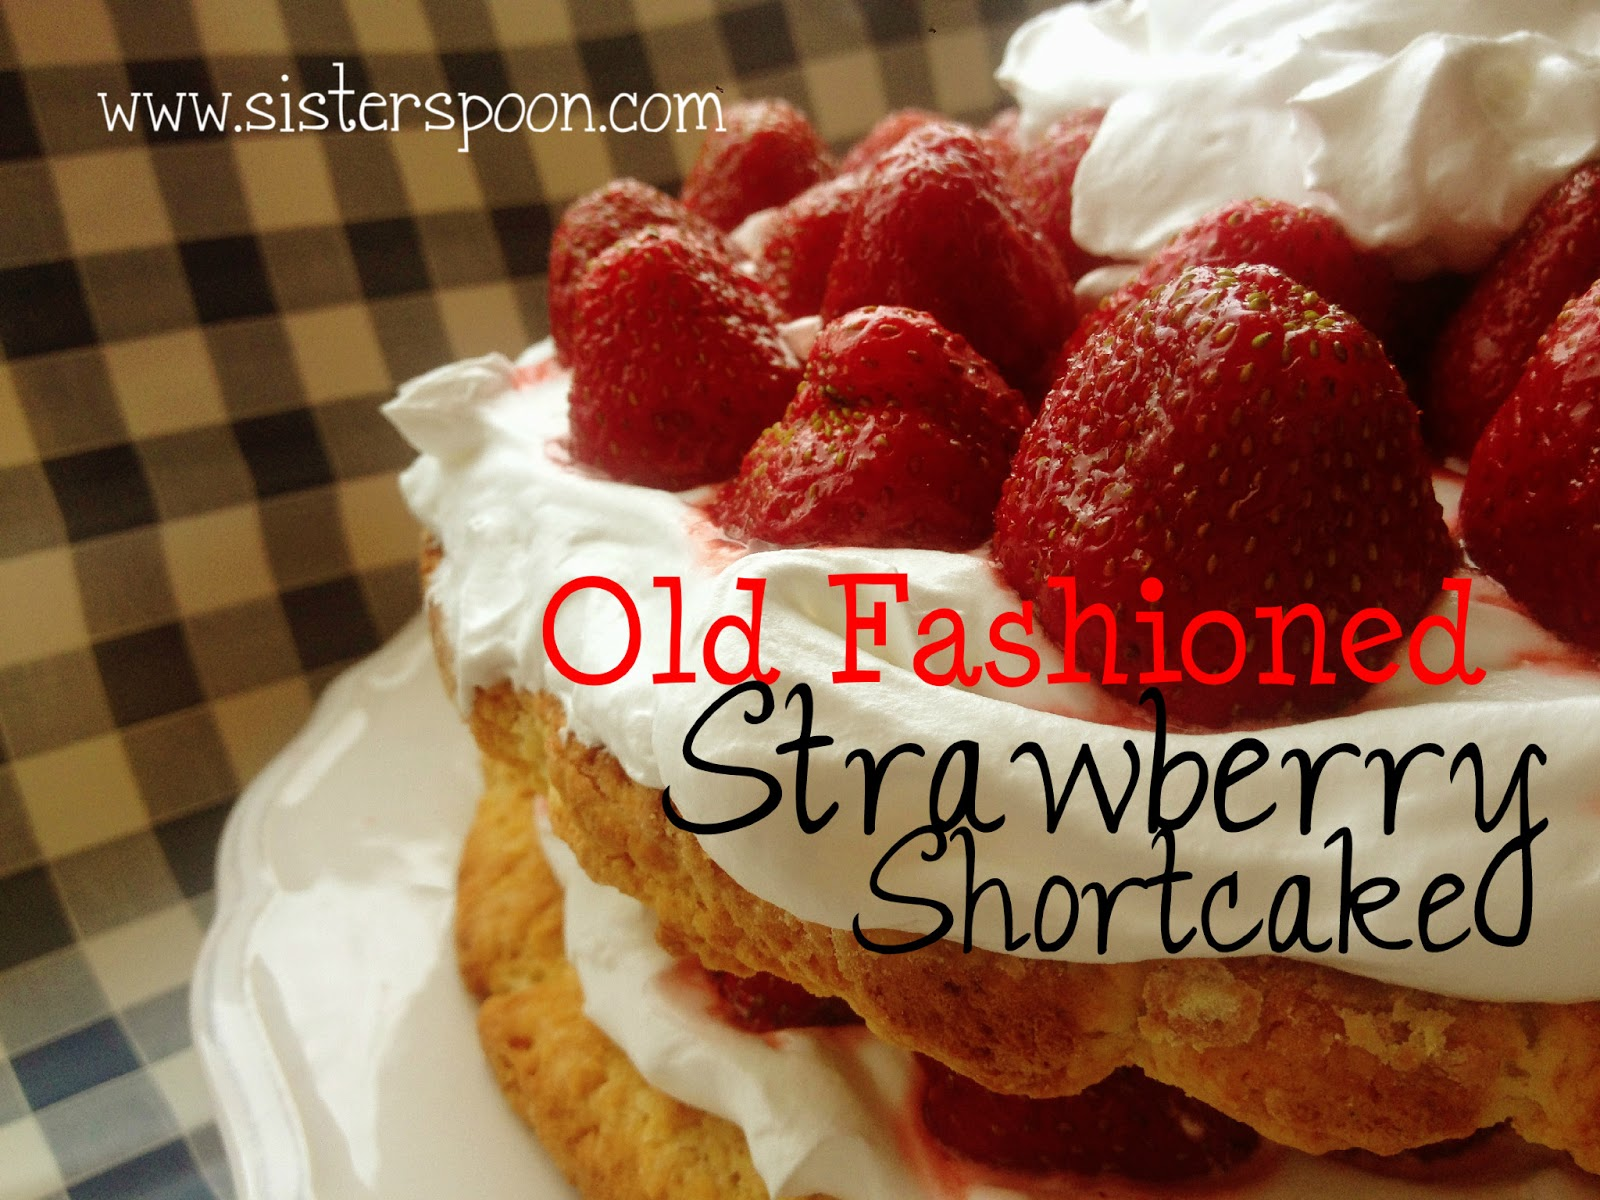 Sister Spoon: Old Fashioned Strawberry Shortcake